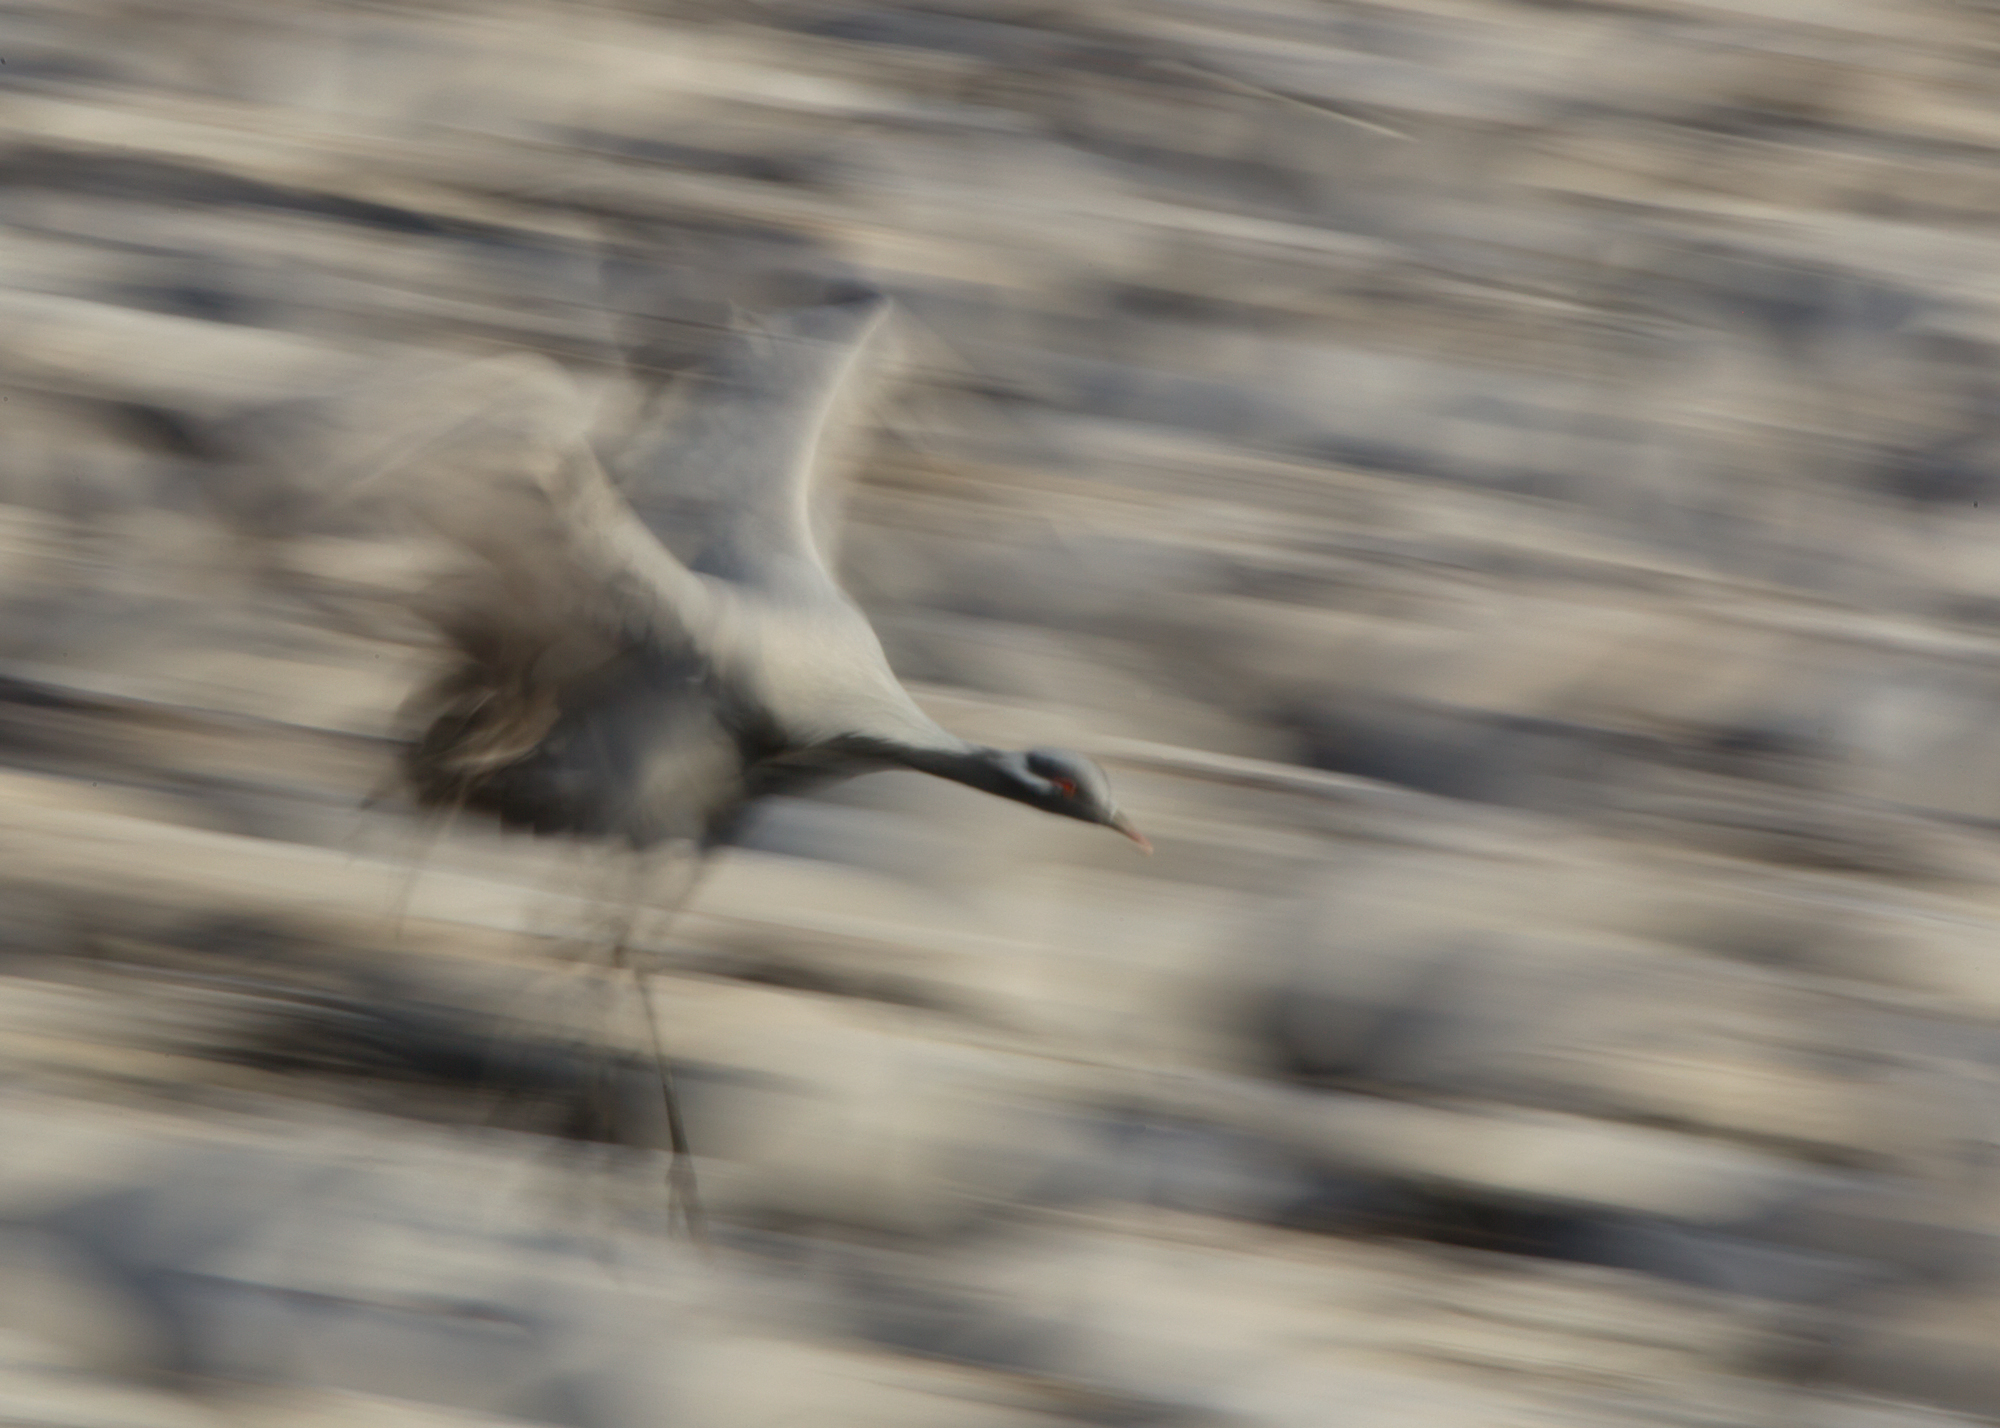 A Demoiselle Crane comes in to land in a packed feeding compound at Khichan.